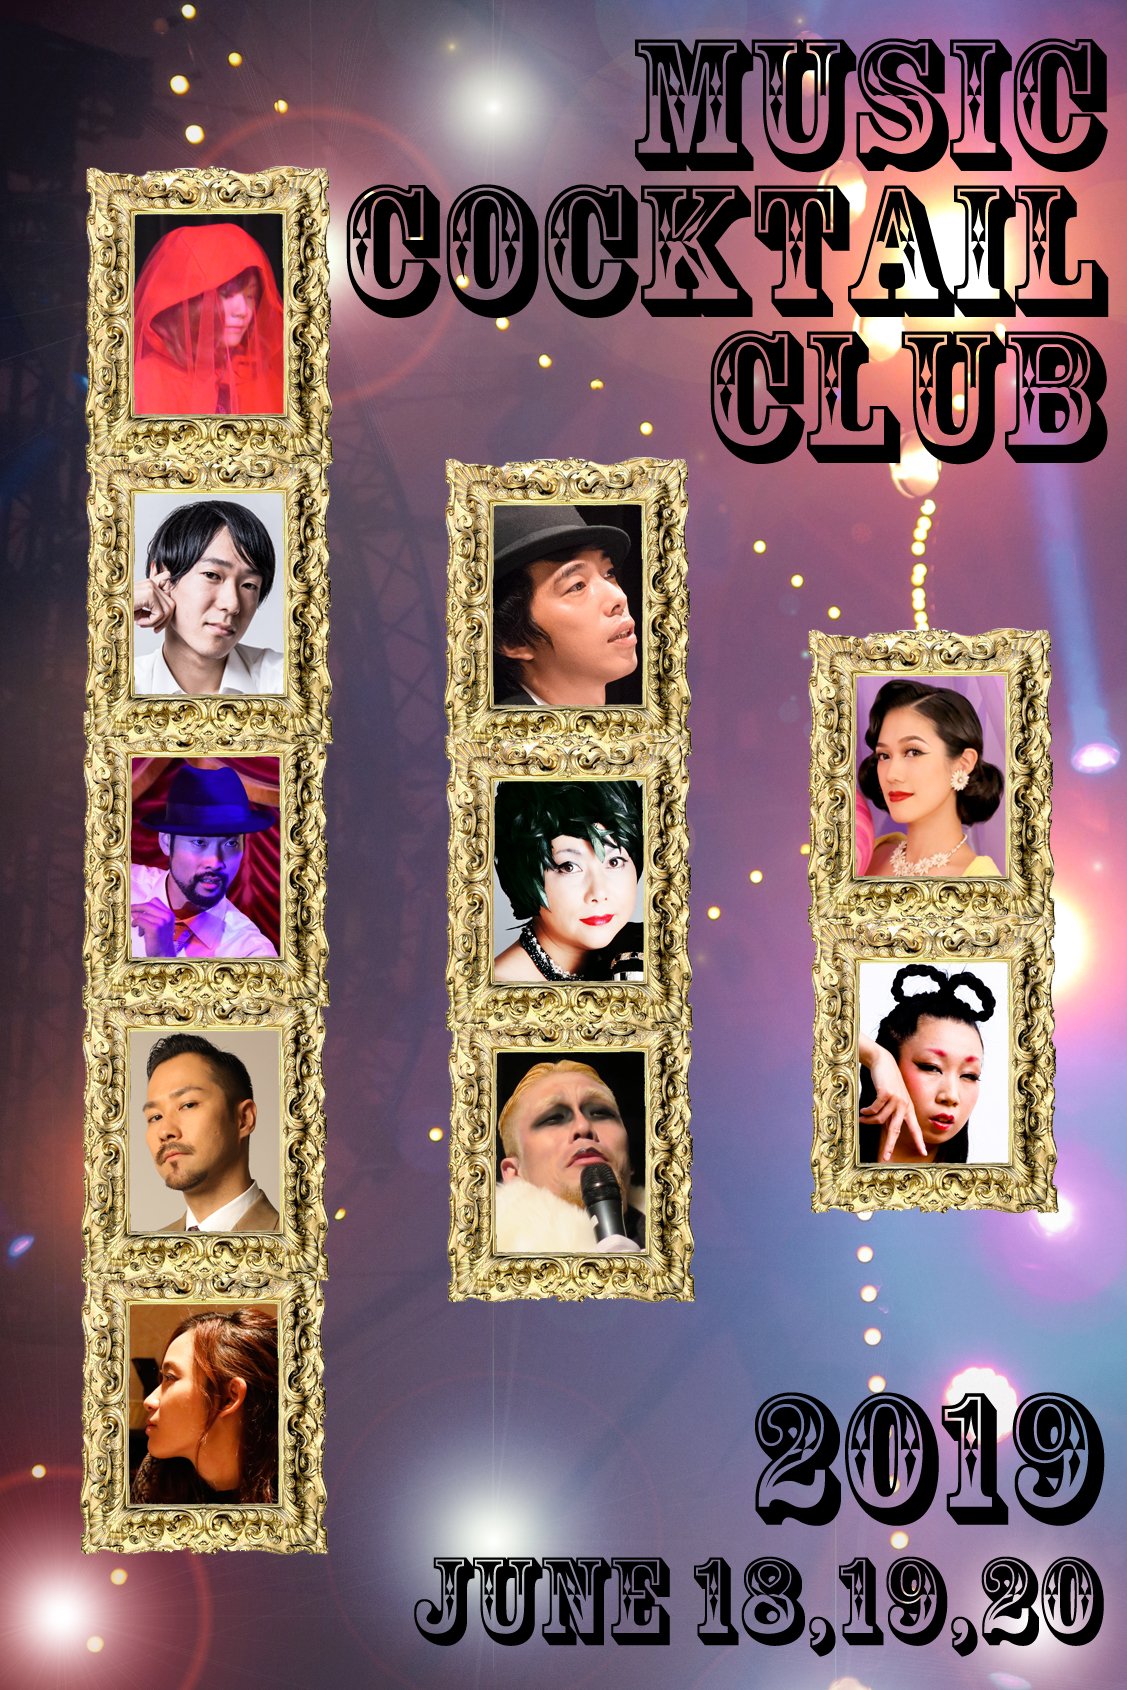 MUSIC COCKTAIL CLUB レシピ・6